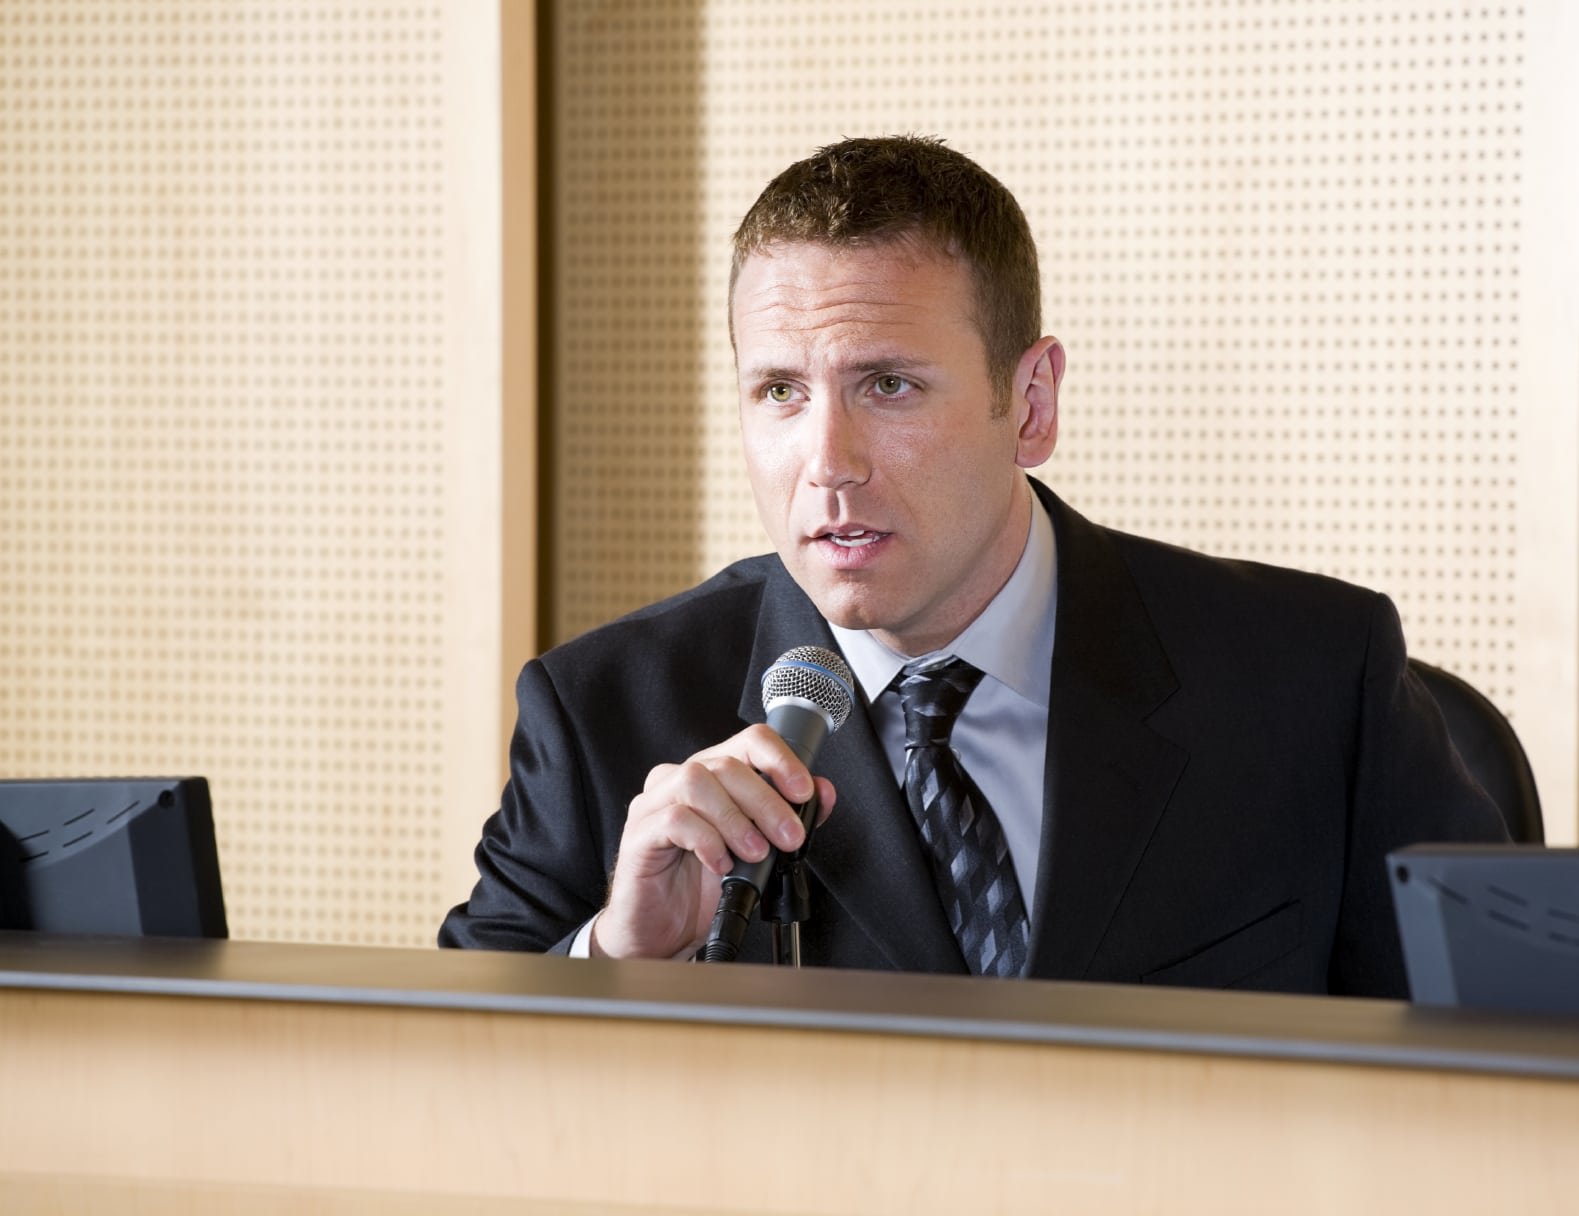 Young Man Giving Testimony In Courtroom Stock Photo